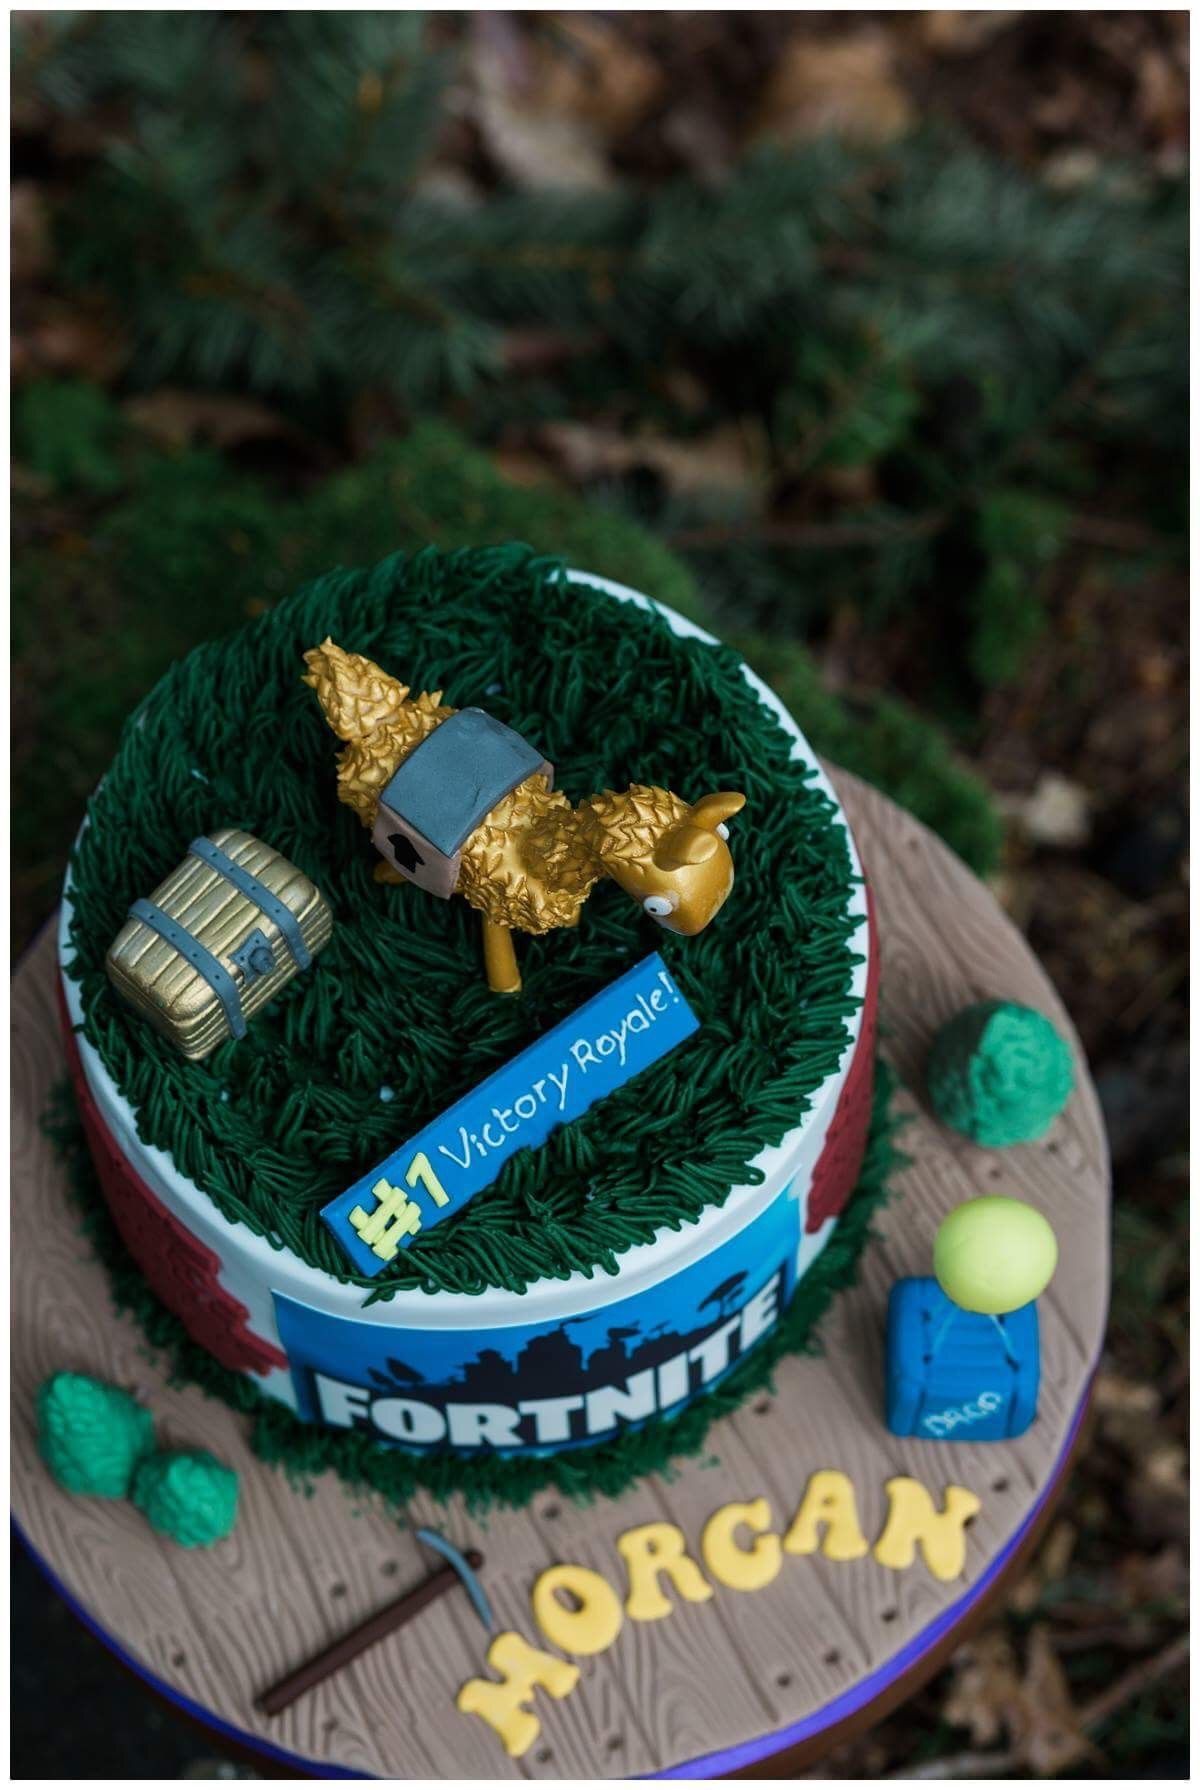 Fortnite birthday cake with victory royals sign and llama